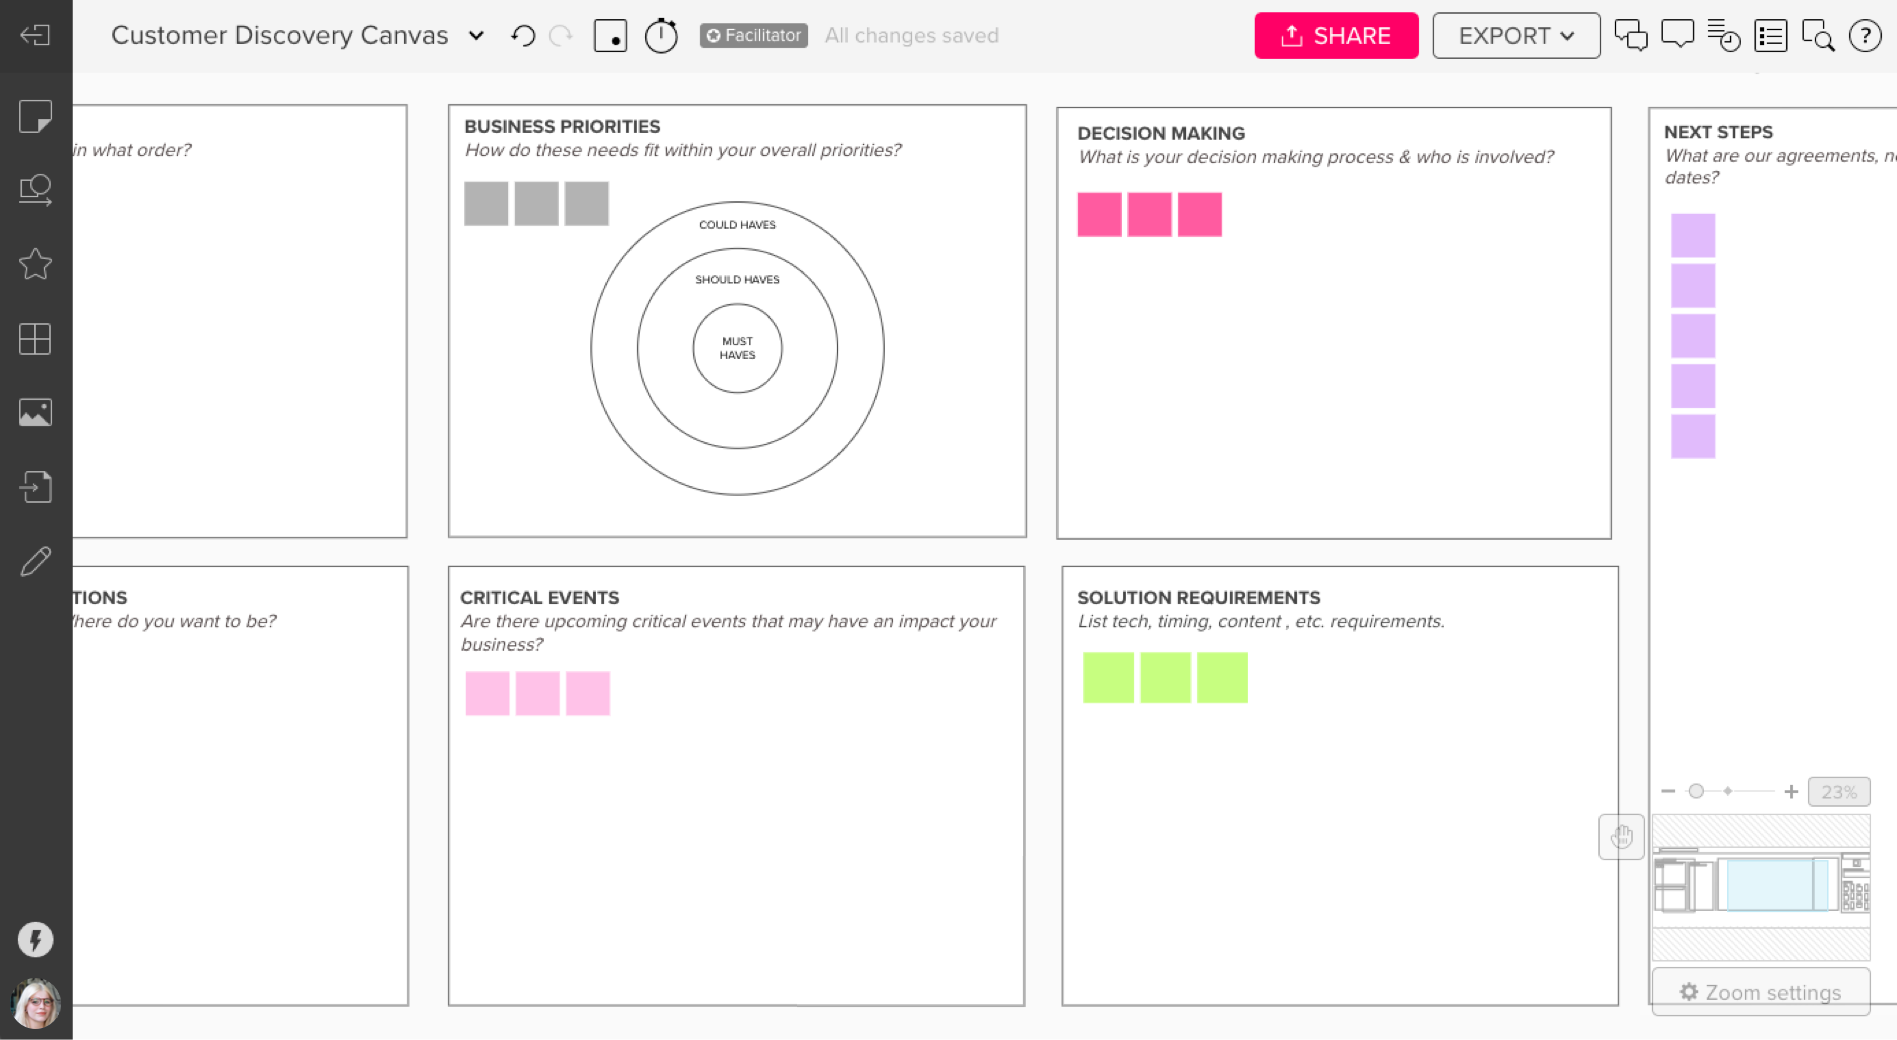 Customer Discovery Canvas